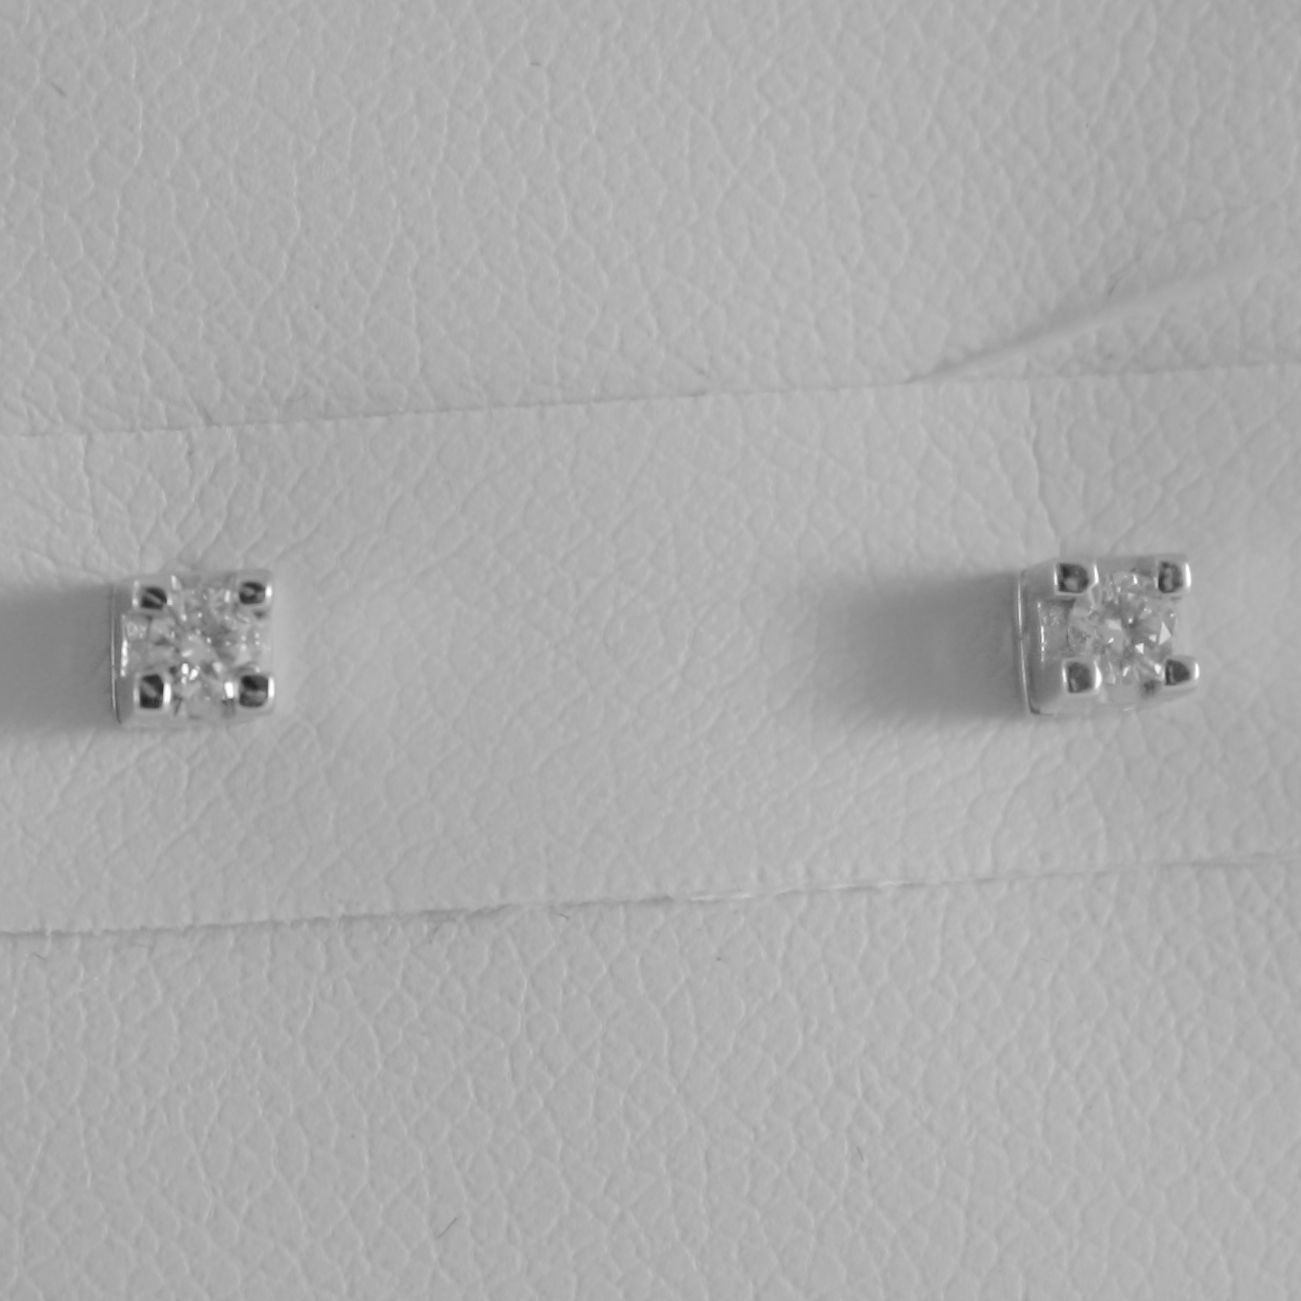 18K WHITE GOLD MINI SQUARE EARRINGS DIAMOND DIAMONDS 0.10 CT, MADE IN ITALY